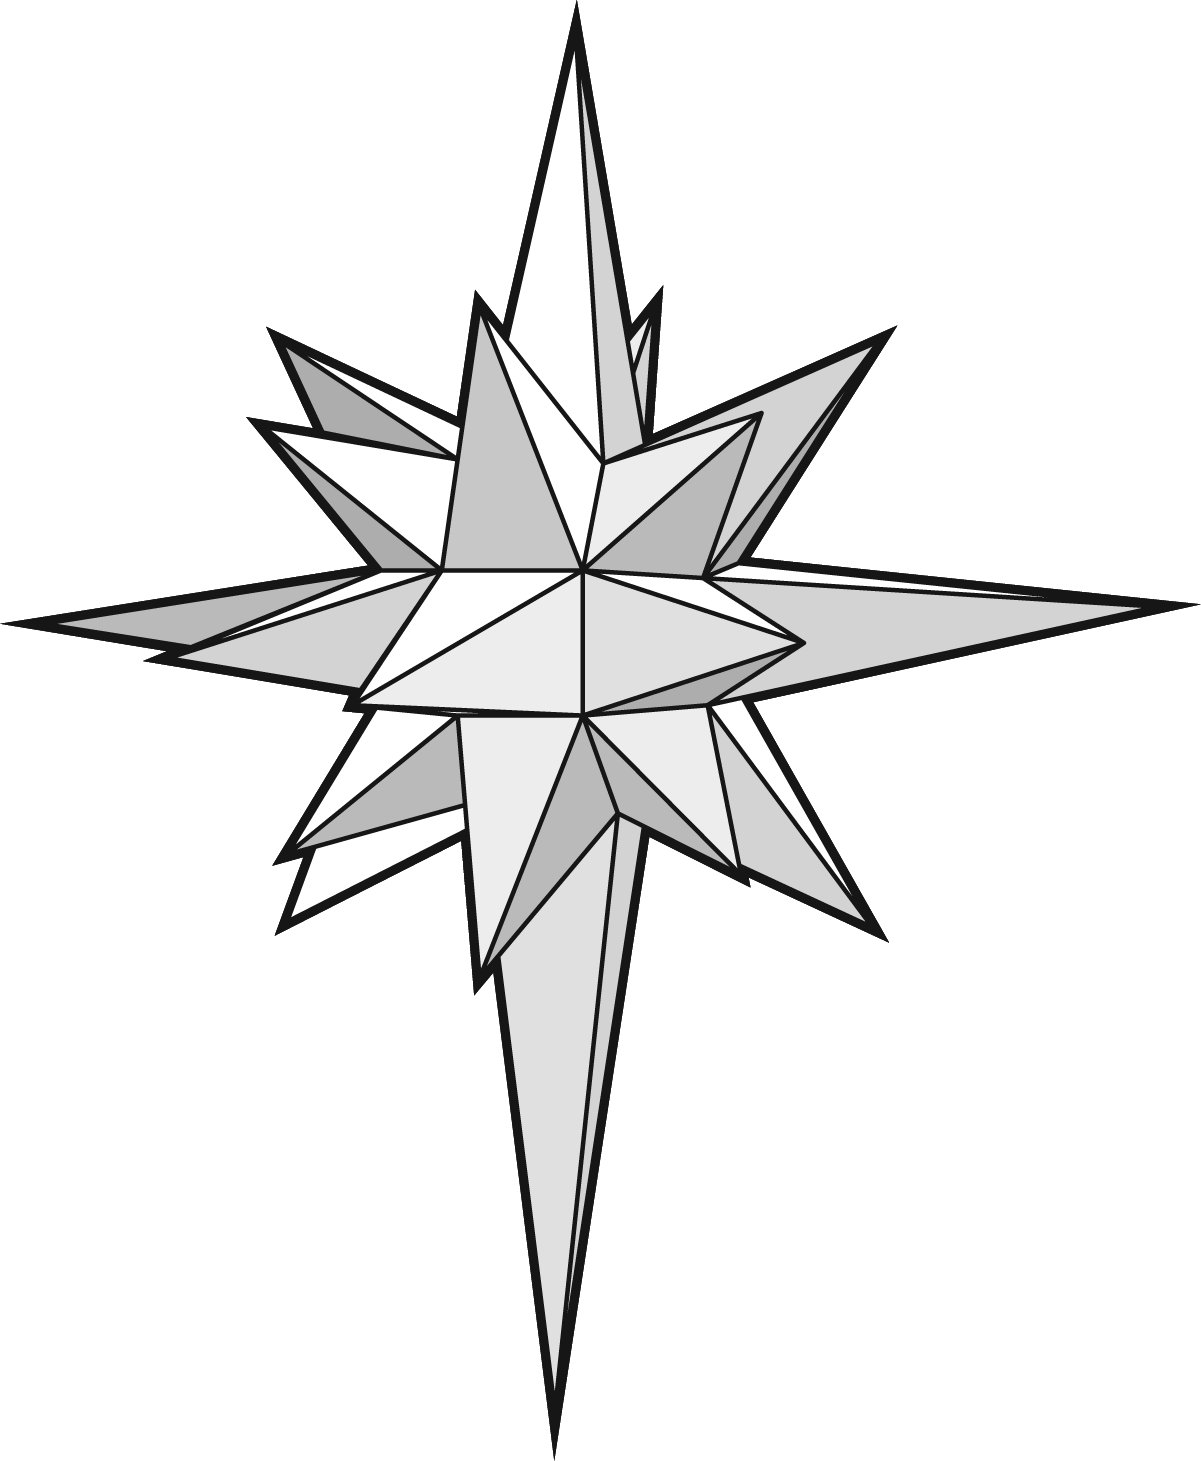 Star of bethlehem clipart free vector black and white download Star Drawing at GetDrawings.com | Free for personal use Star Drawing ... vector black and white download